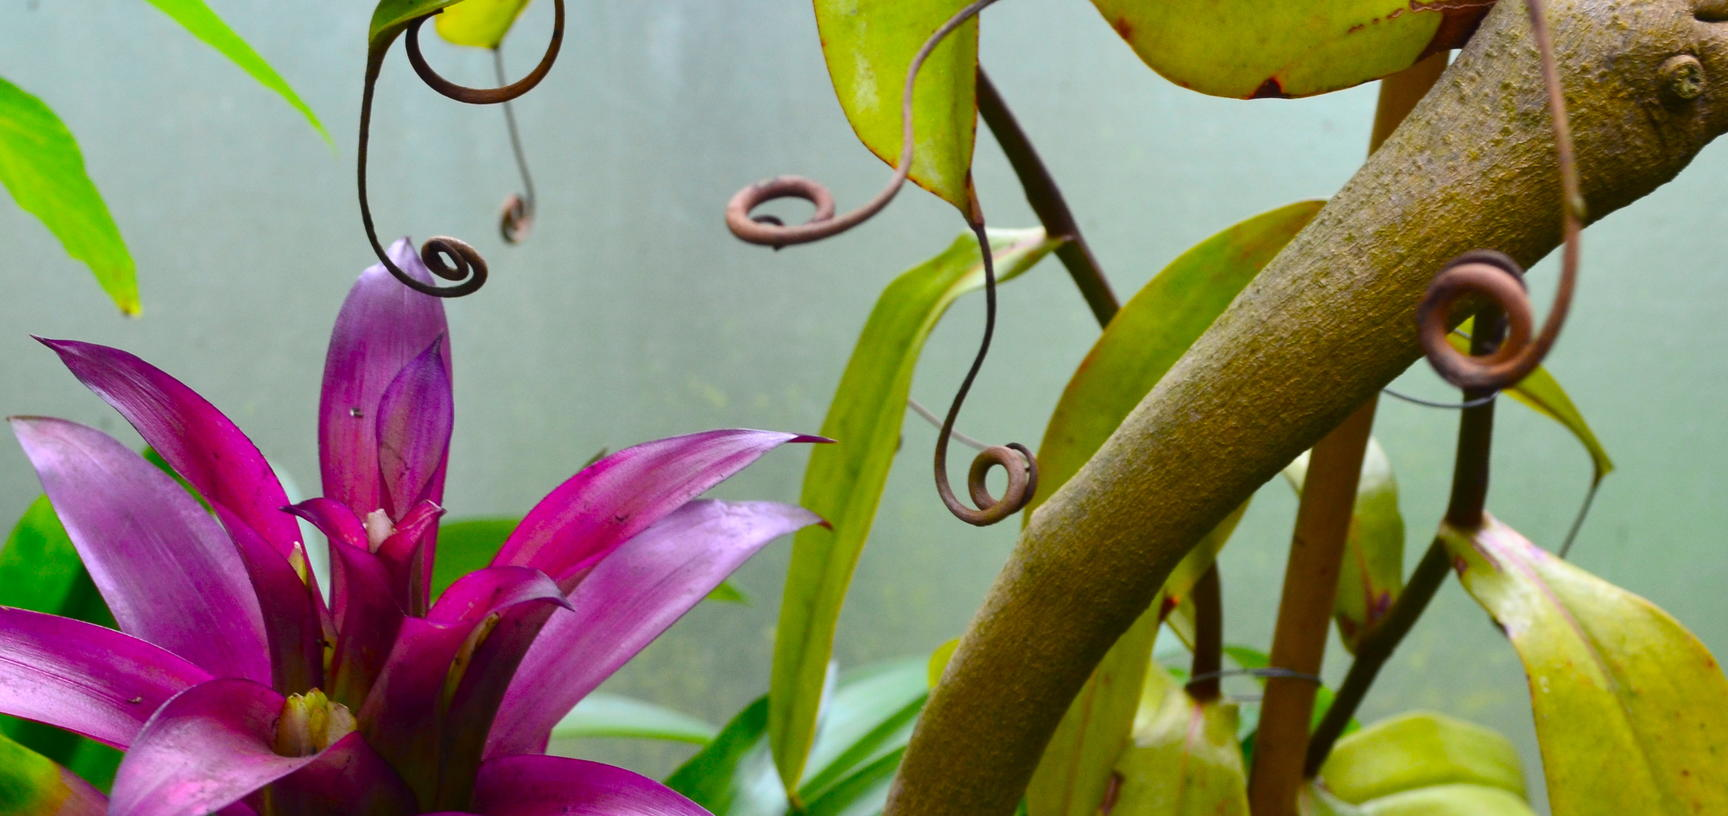 Plants in the Lily House